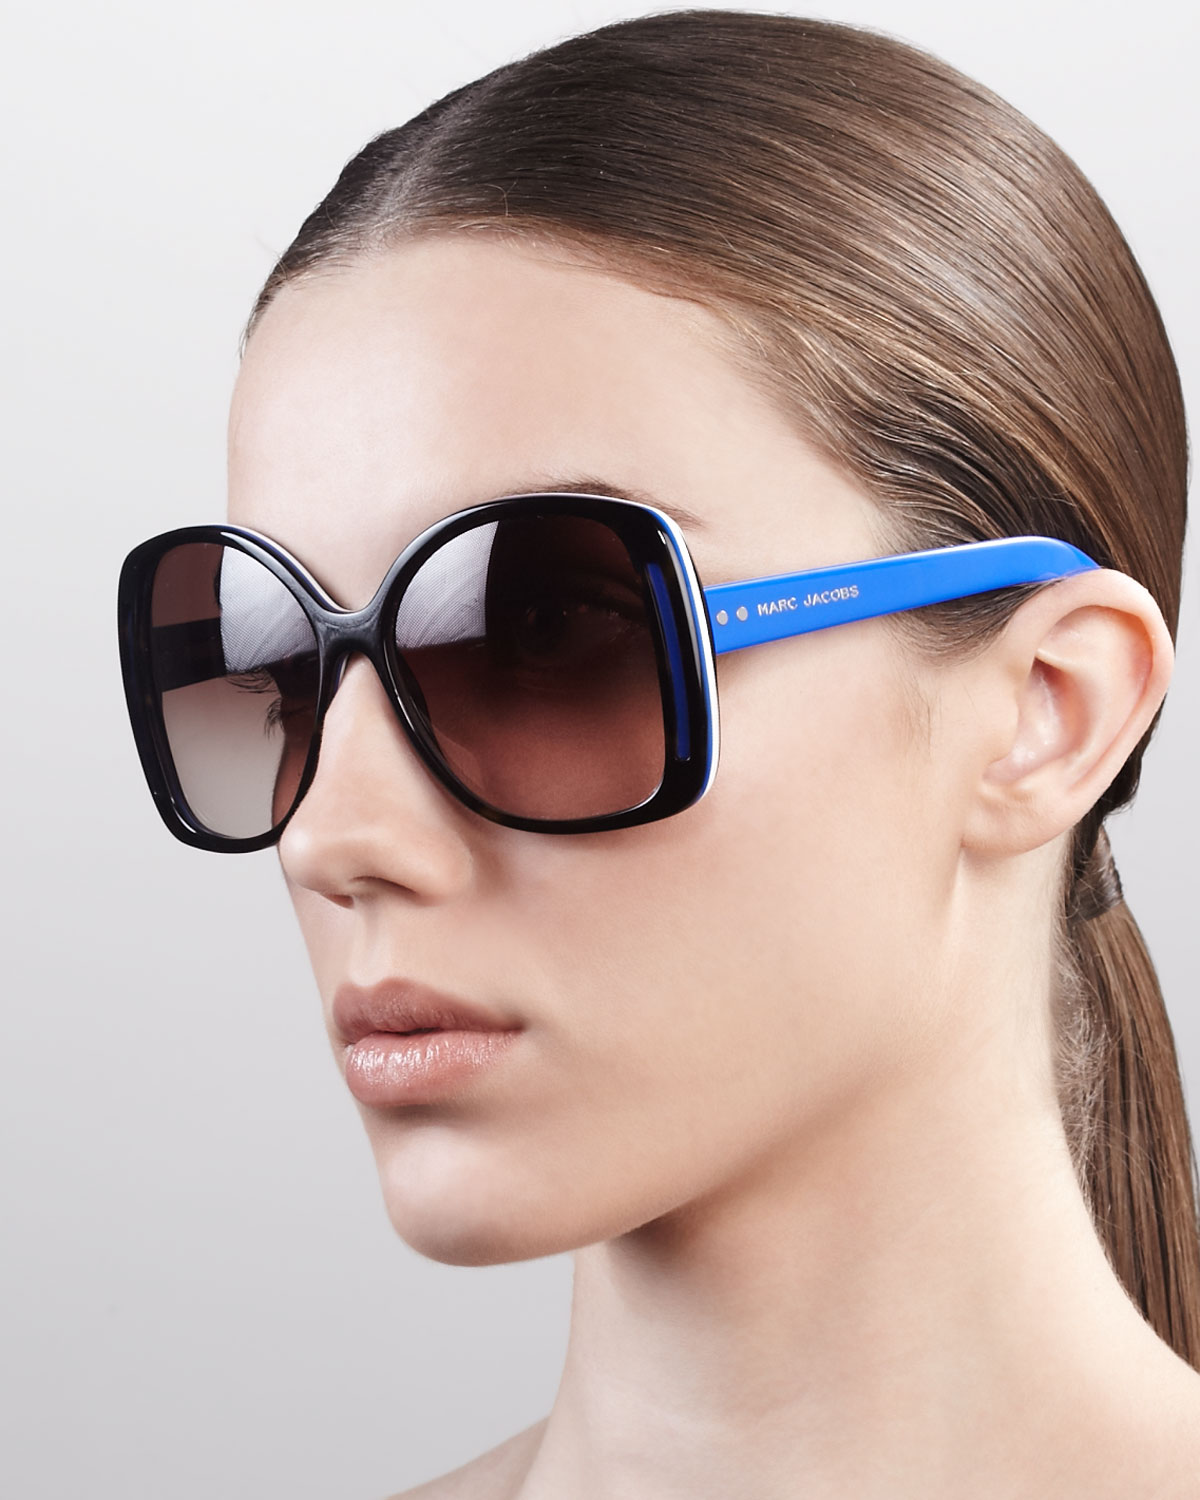 a218249c15 Marc Jacobs Oversized Oval Sunglasses in Blue - Lyst